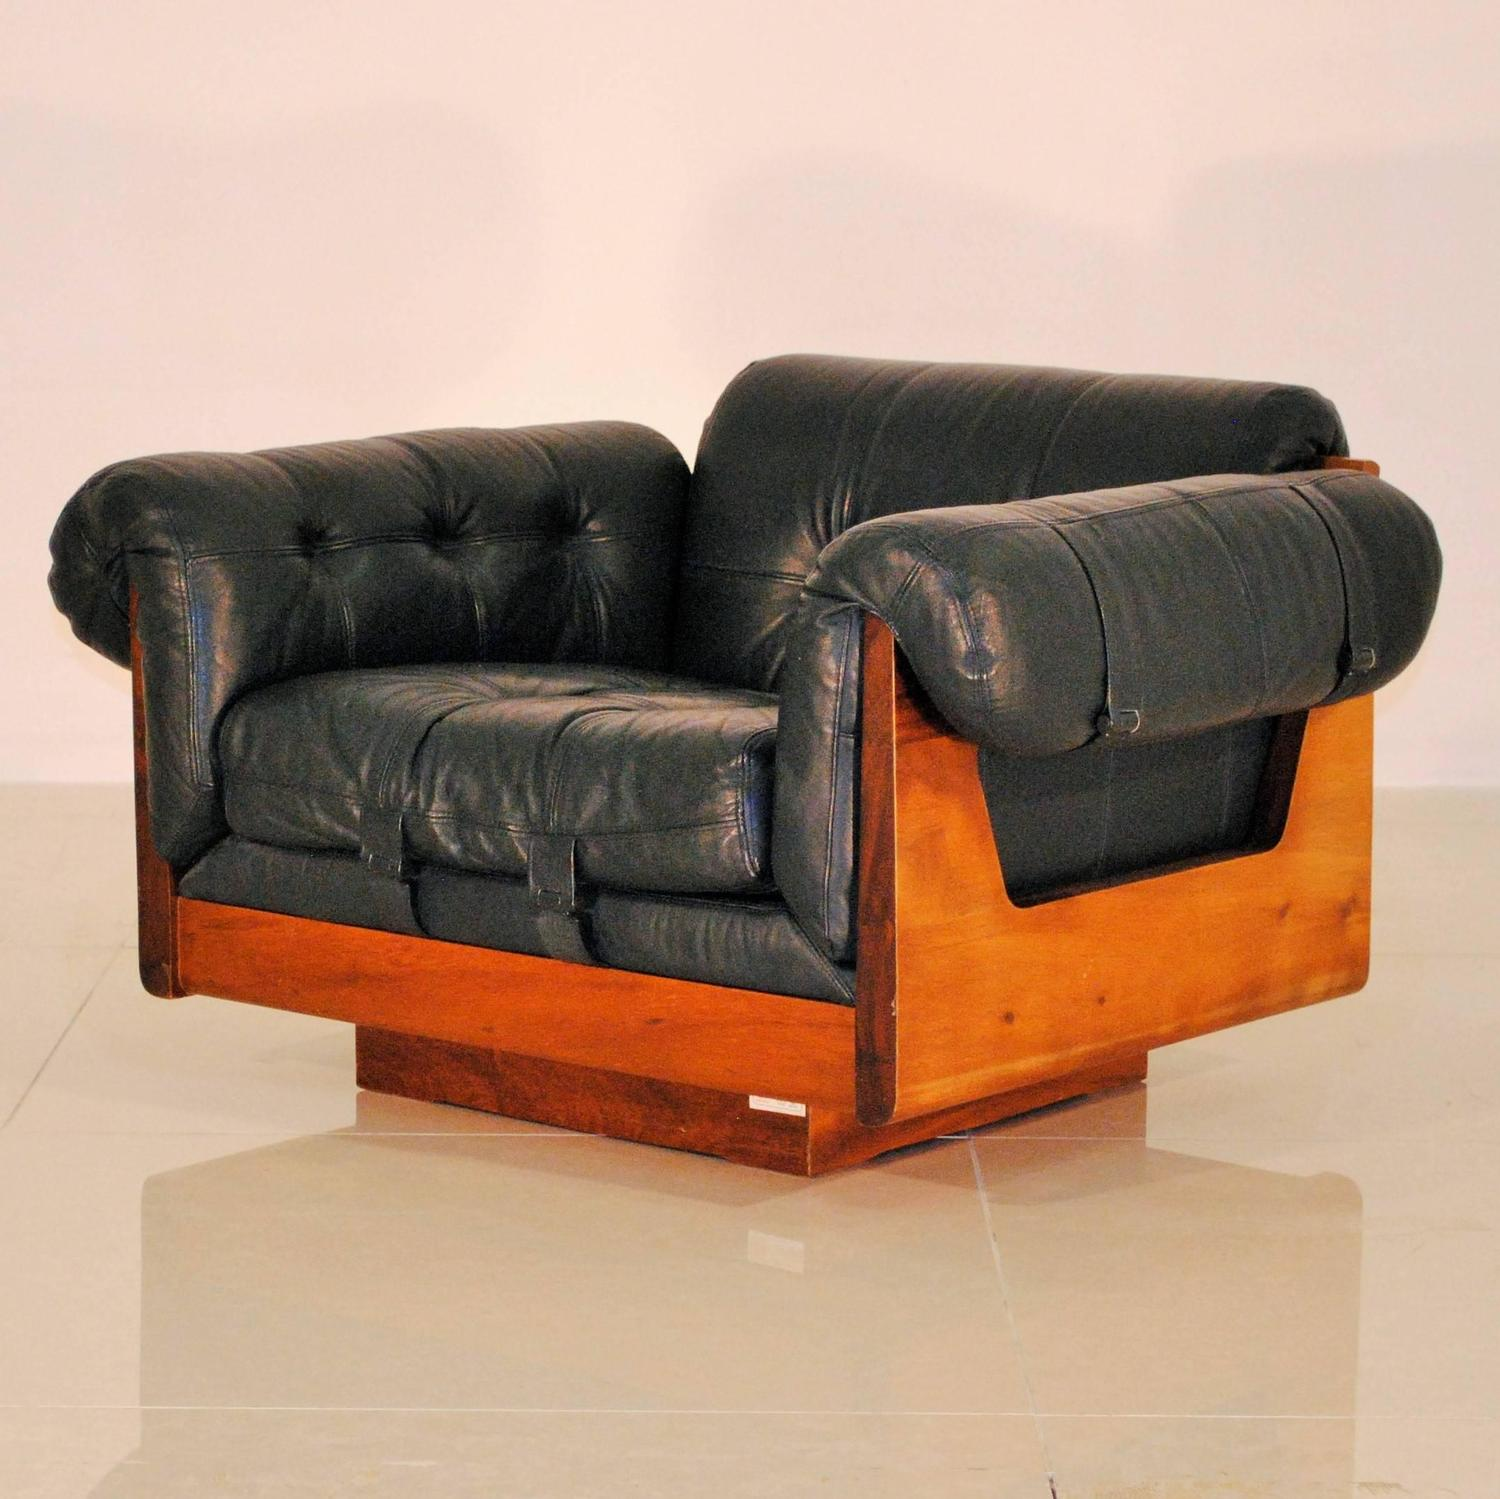 Electric outlet furniture divisio costa rica furniture for Outlet sofas valencia